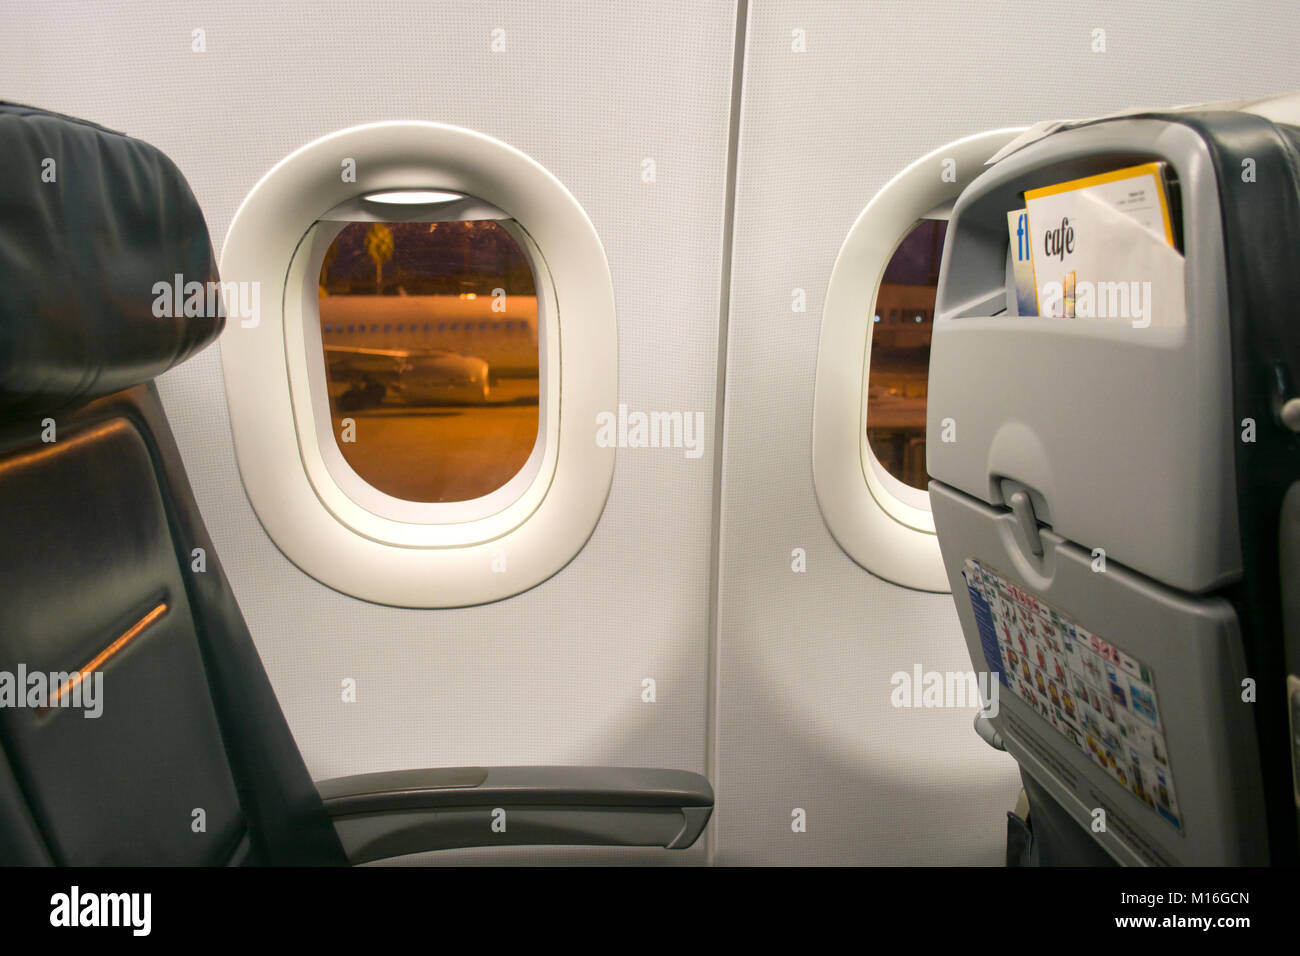 airplane seat and window inside an aircraft Stock Photo